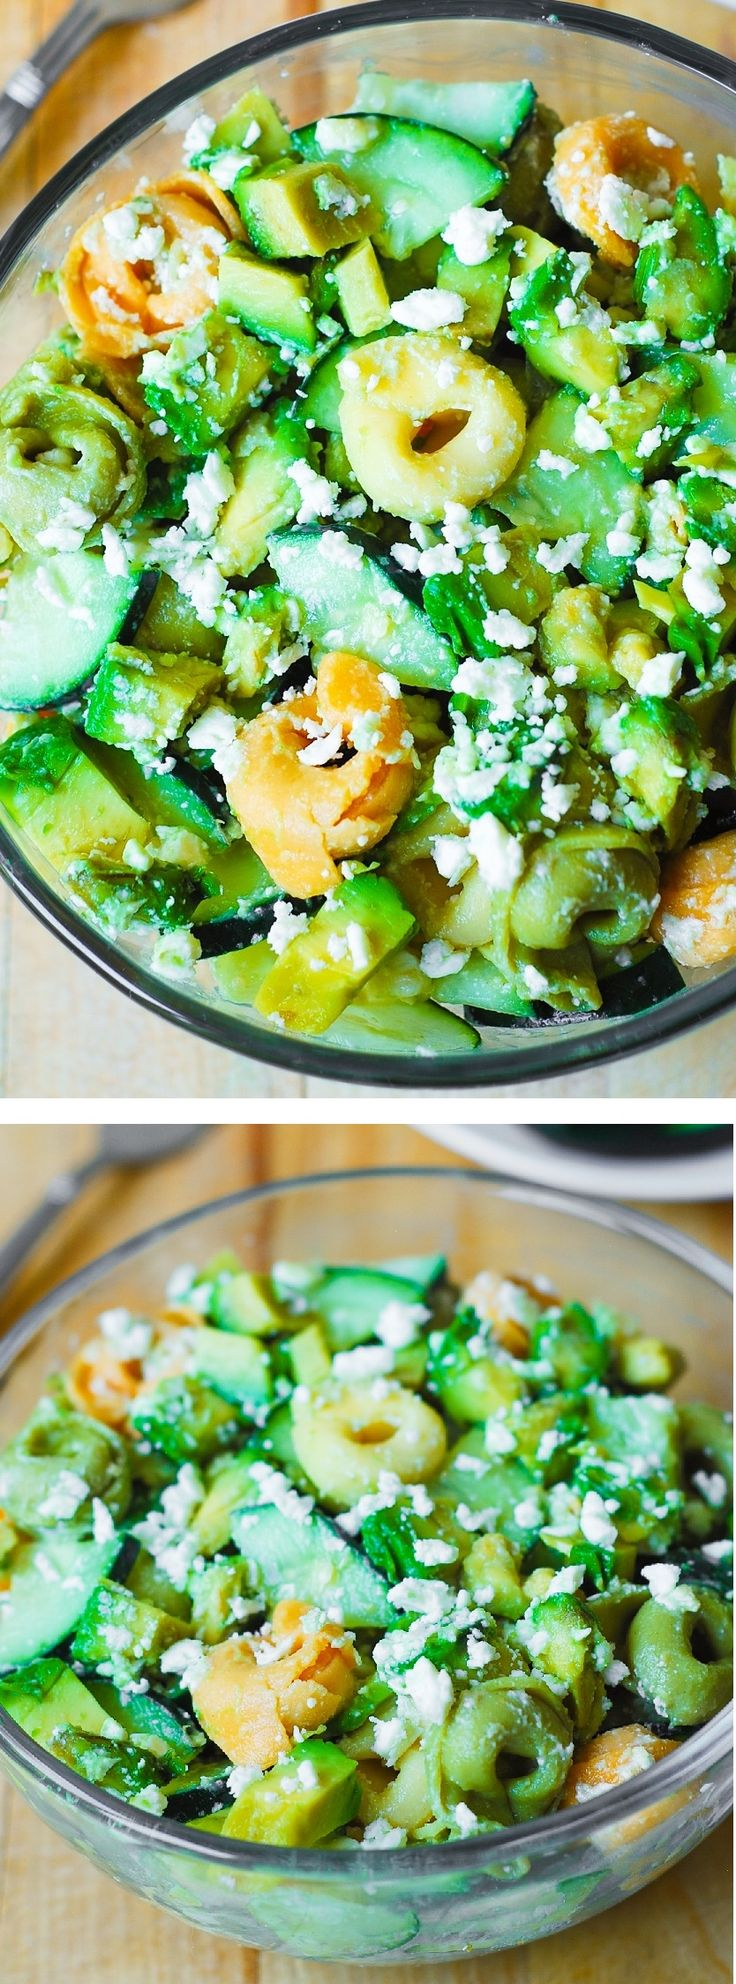 Greek Tortellini Salad with avocados and cucumbers in a creamy Feta Cheese Greek Salad Dressing